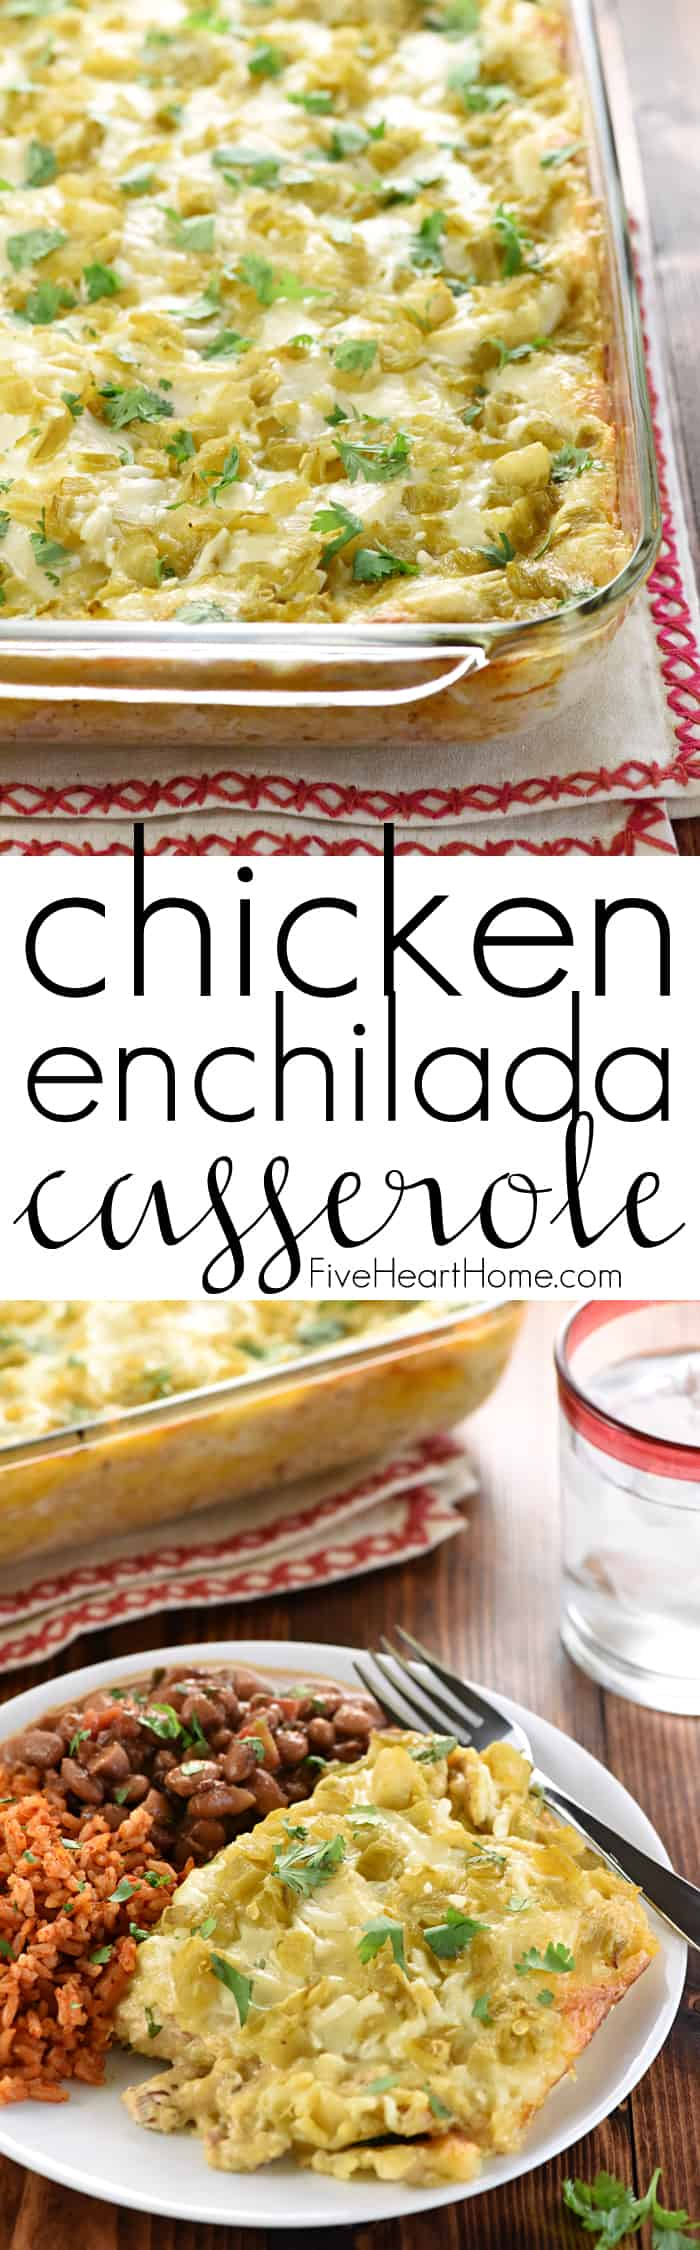 Chicken Enchilada Casserole Collage with Text Overlay